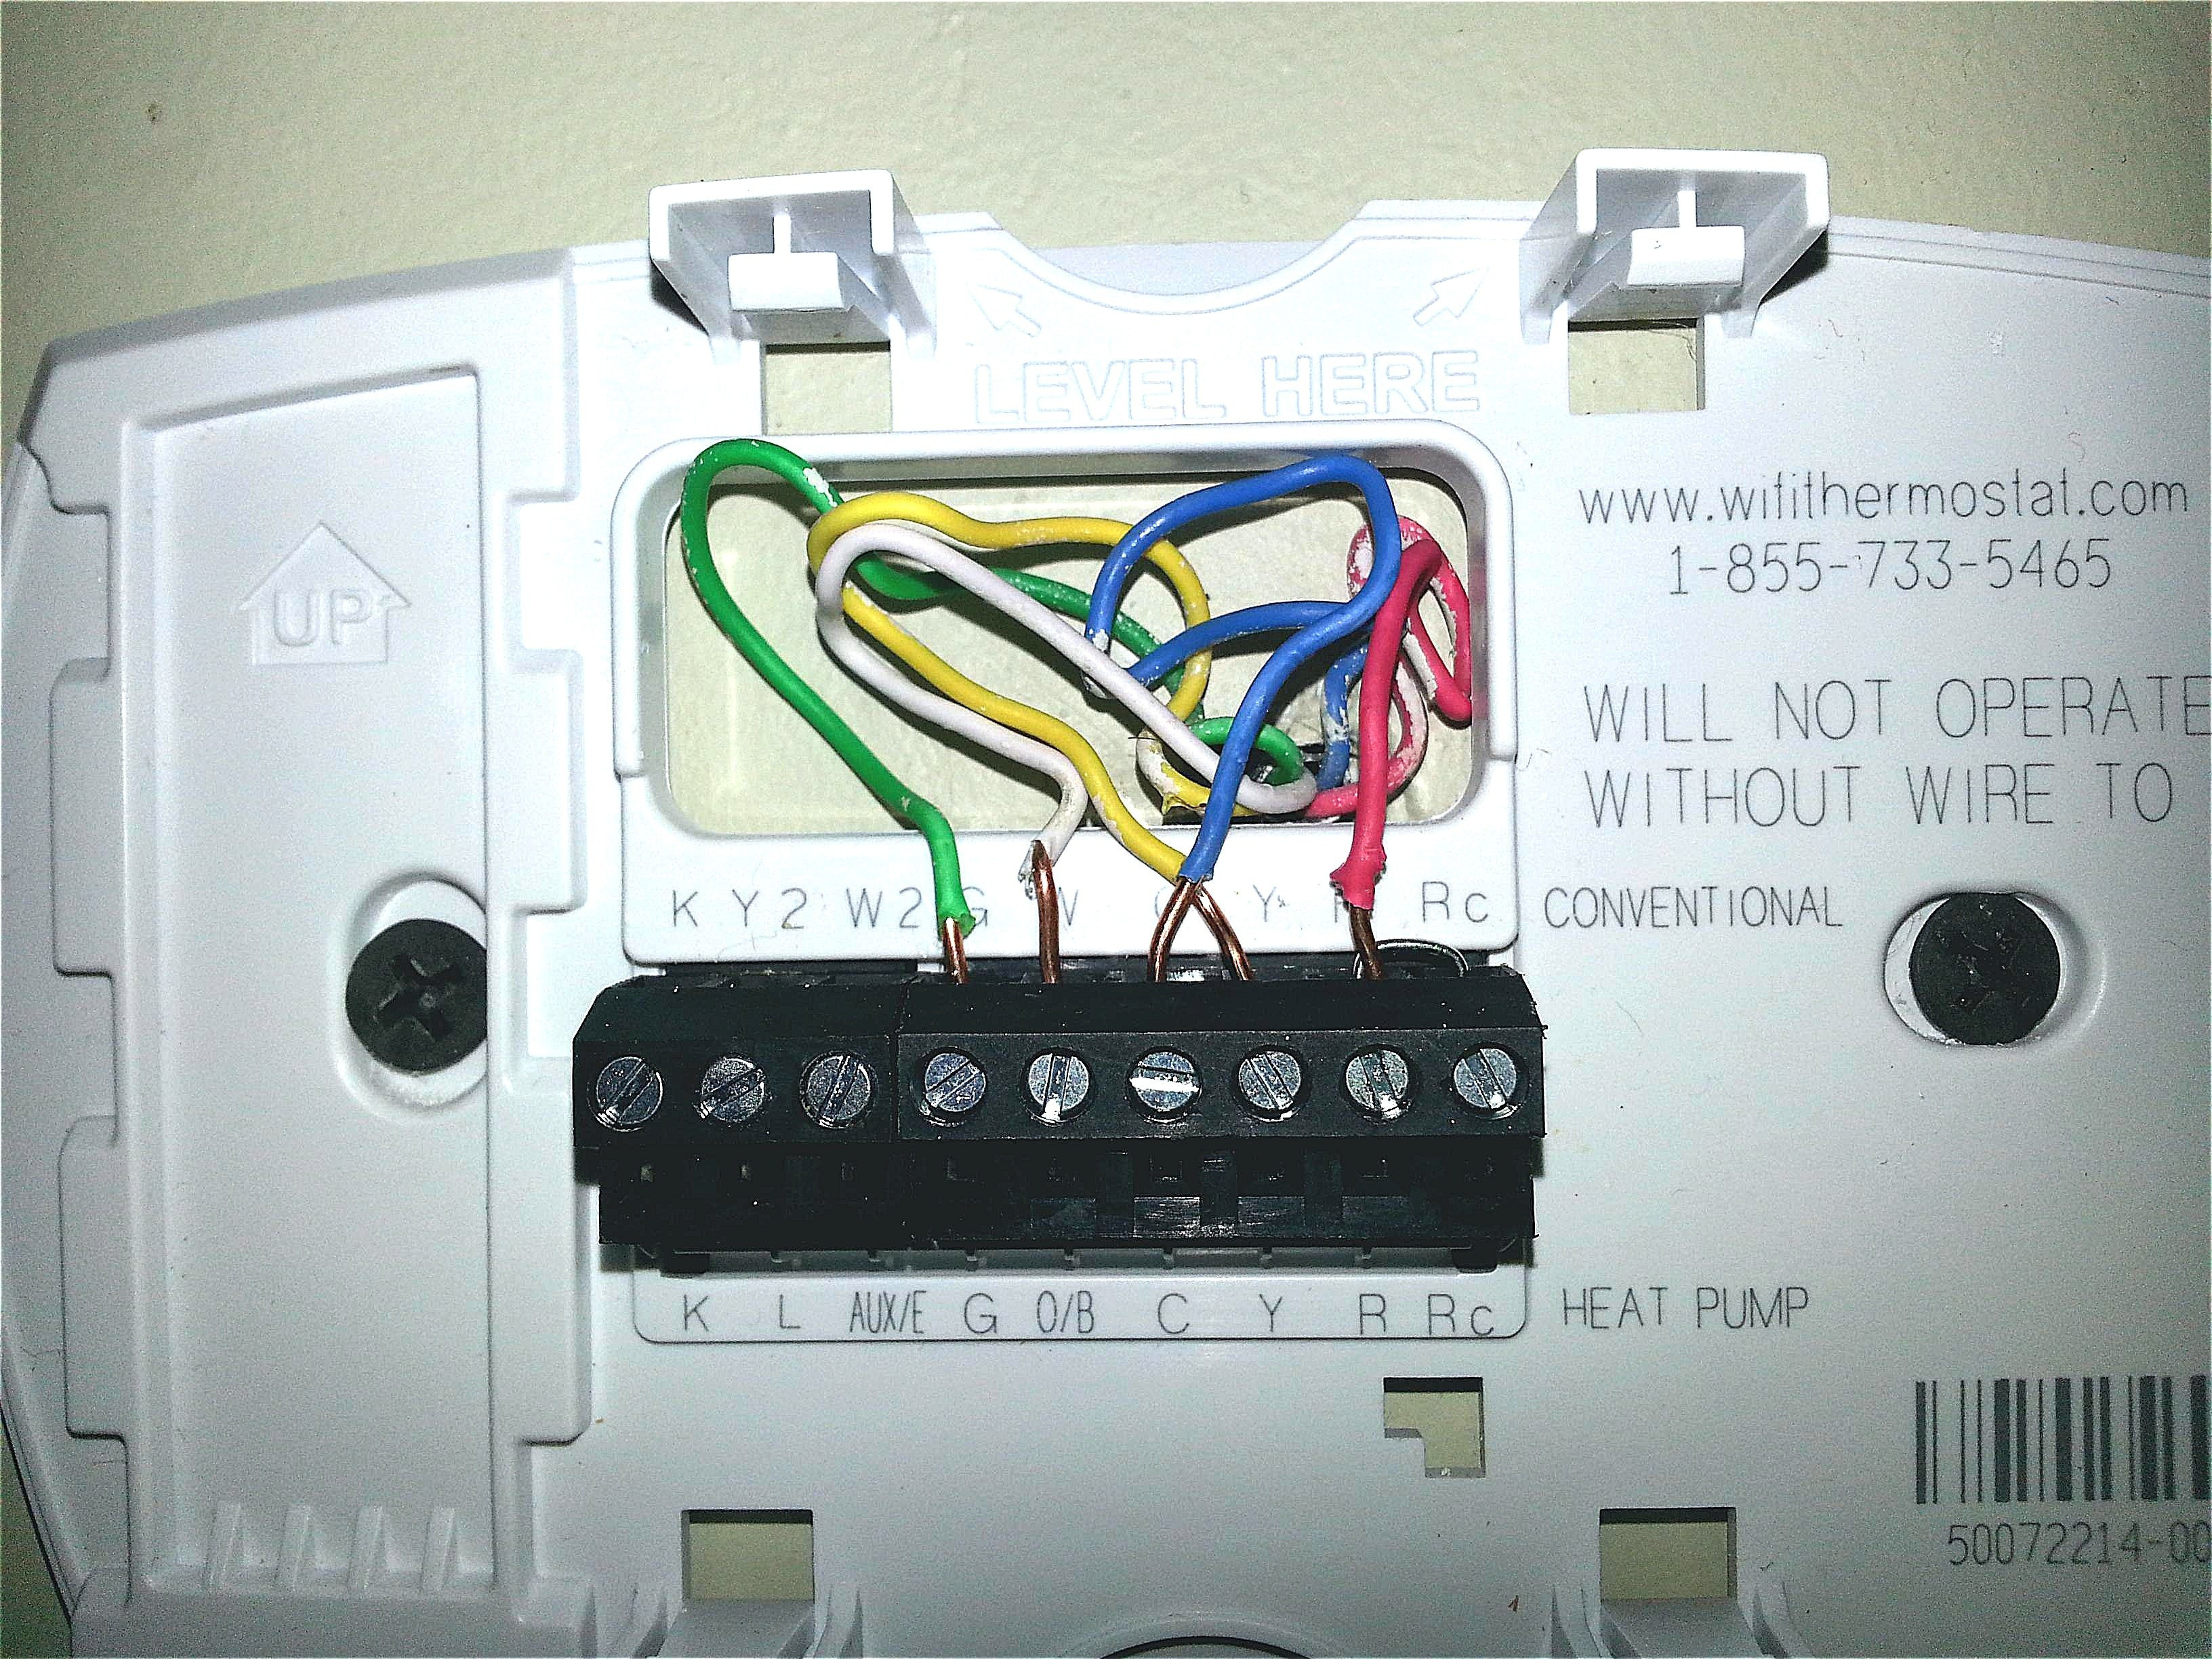 honeywell chronotherm iv plus wiring diagram Collection-Wiring Diagram Honeywell Heat Pump Thermostat Best Throughout 9-c